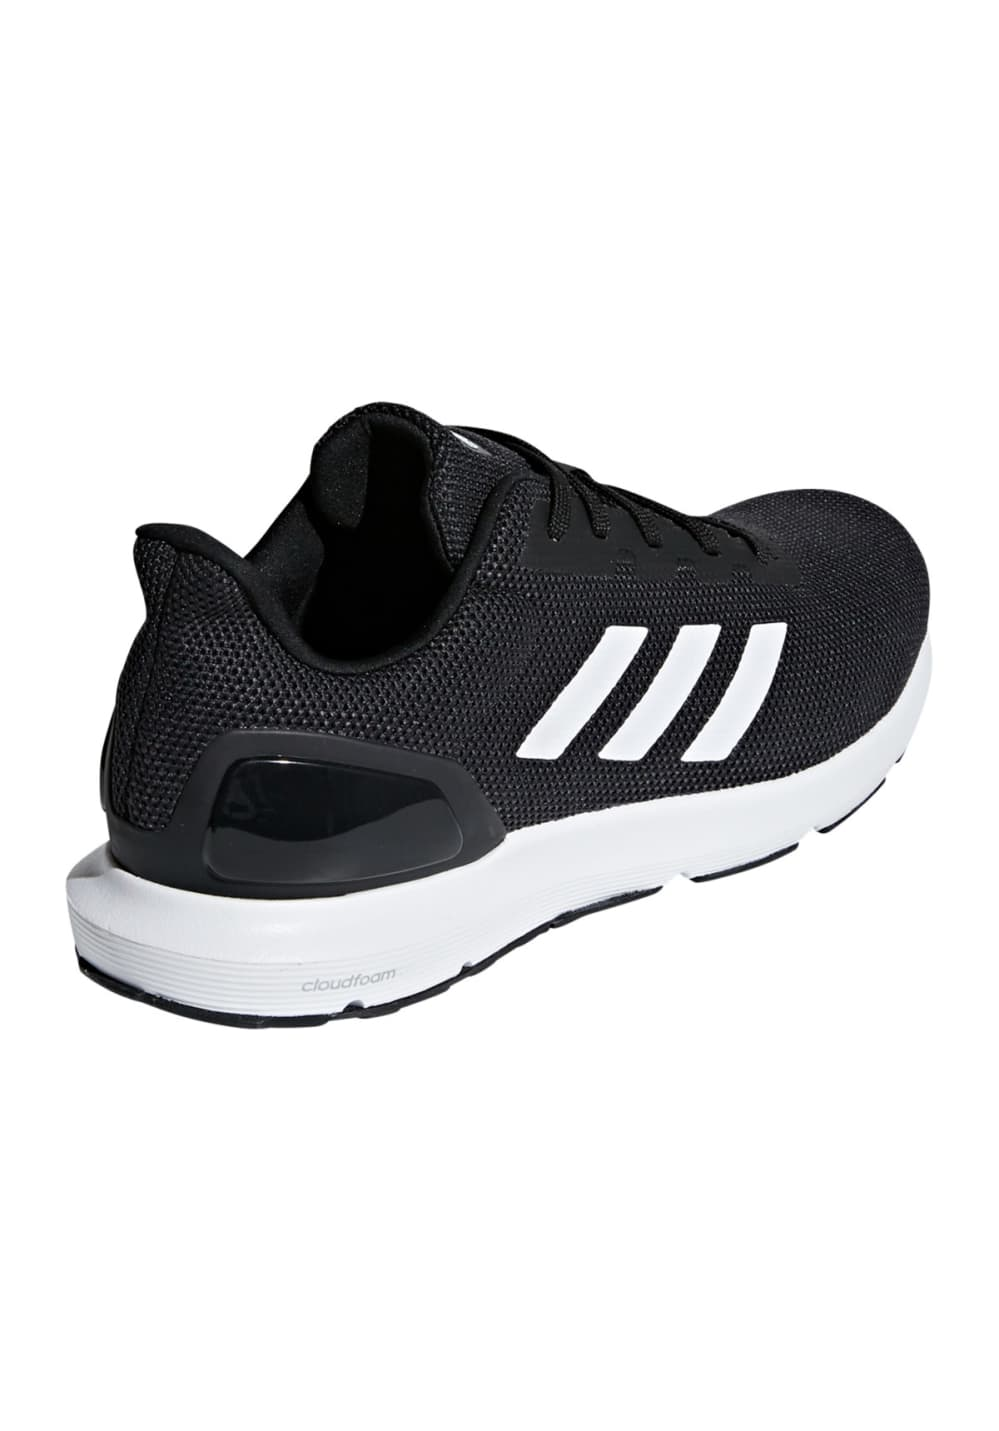 quality design ce780 5f558 adidas COSMIC 2 - Running shoes for Men - Black